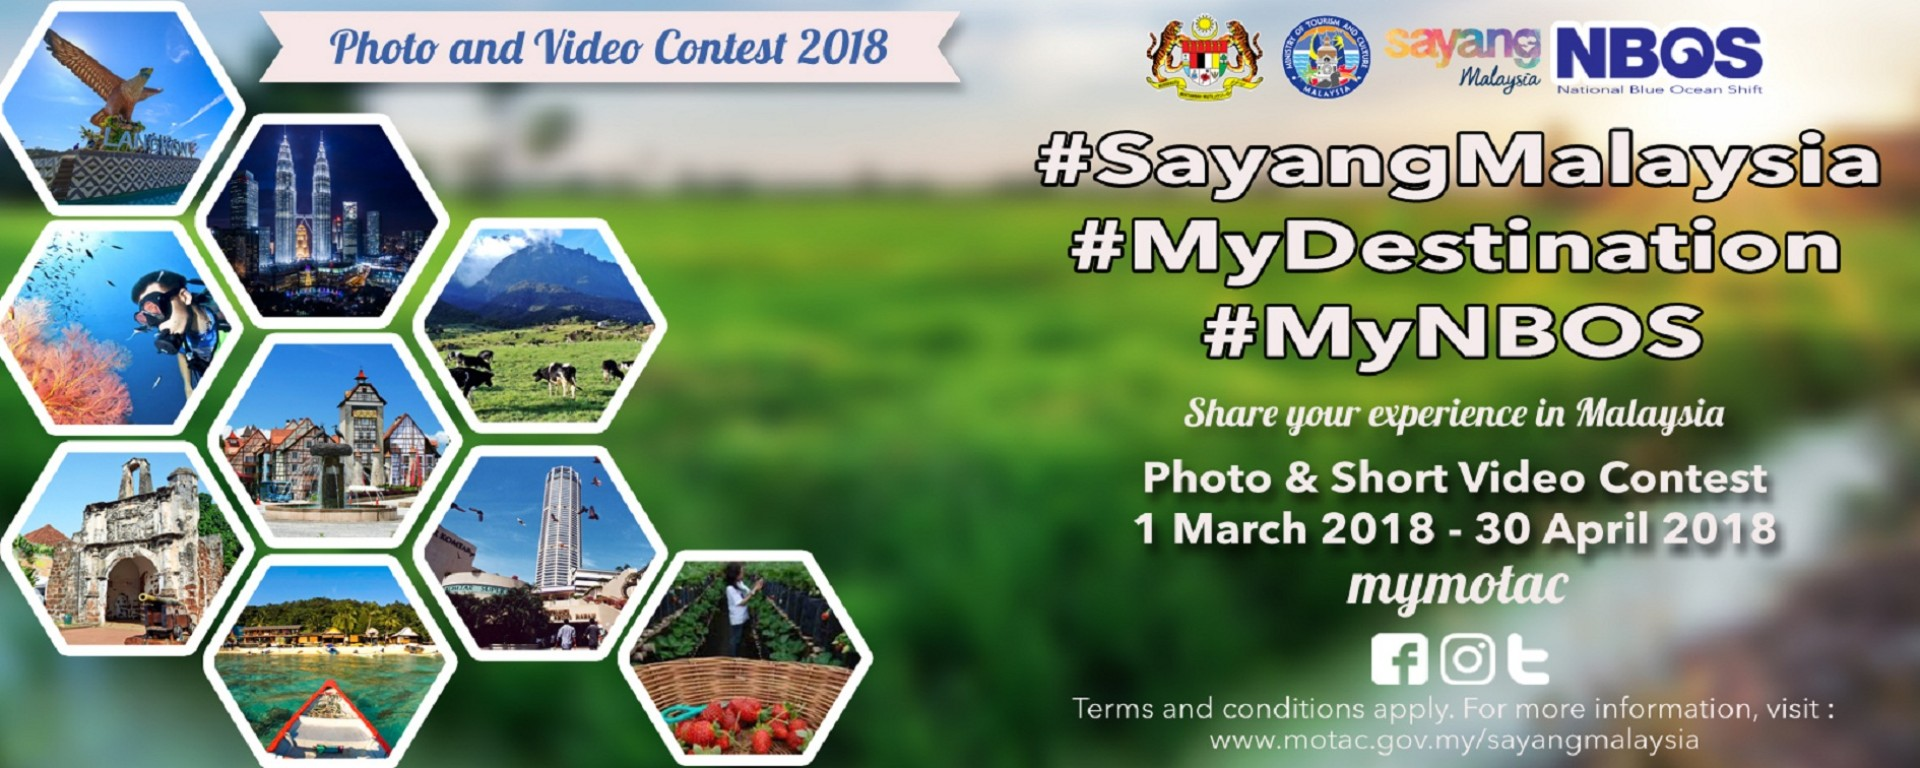 Kempen Media Sosial #SayangMalaysia <div class='action'><a href='http://www.motac.gov.my/sayangmalaysia' class='btn btn-danger btn-lg' target='_blank'>Find Out More</a></div>